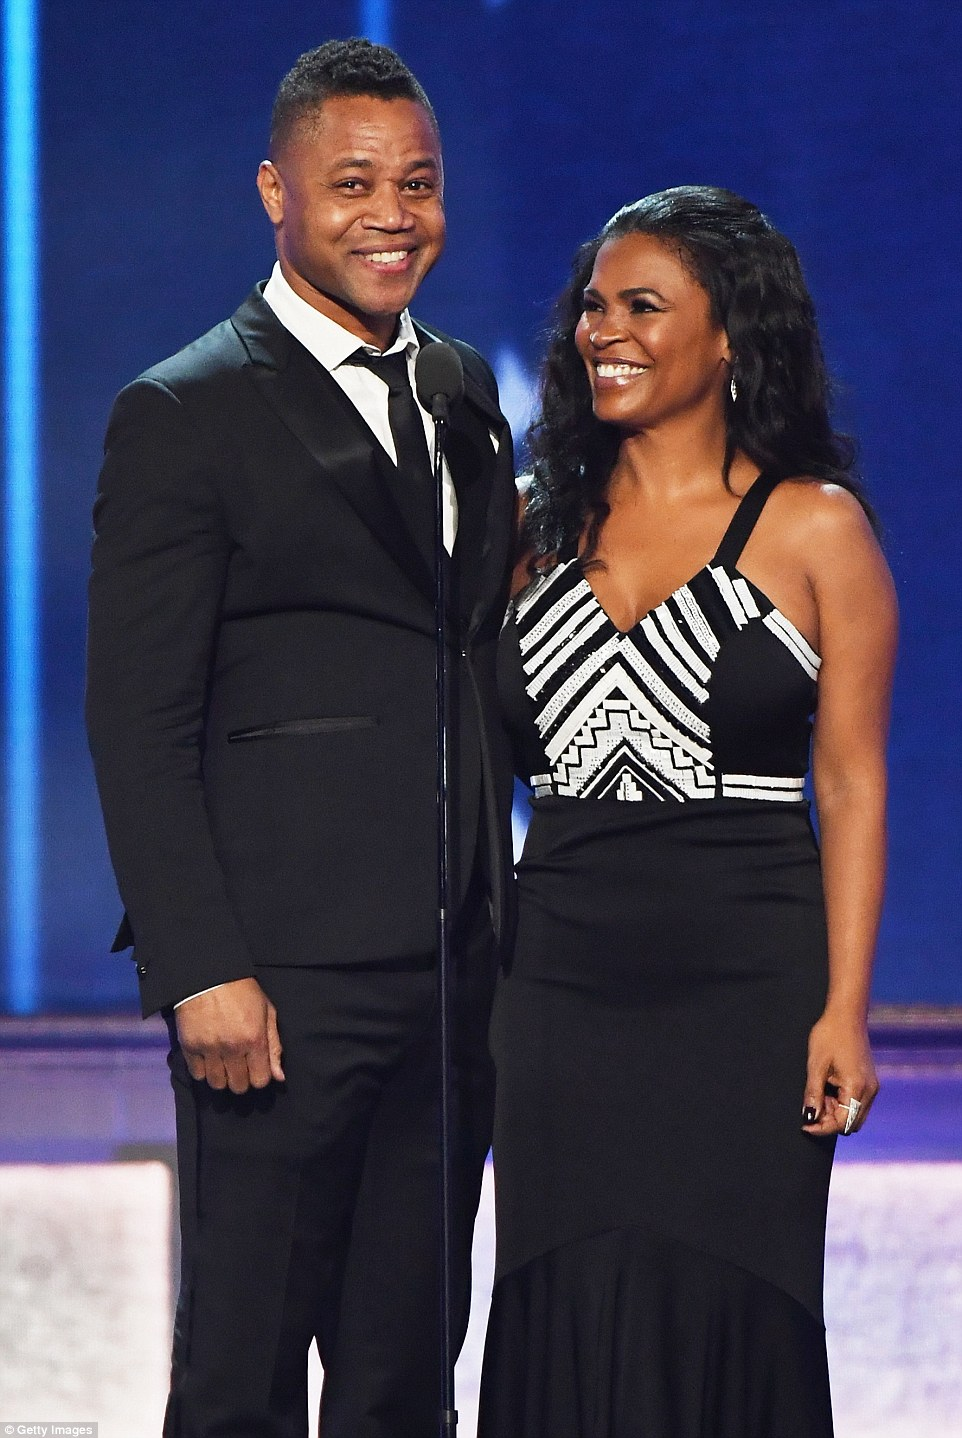 Reunited: Cuba Gooding Jr and Nia Long hit the stage to present as they previously starred together in Boyz N TheHood